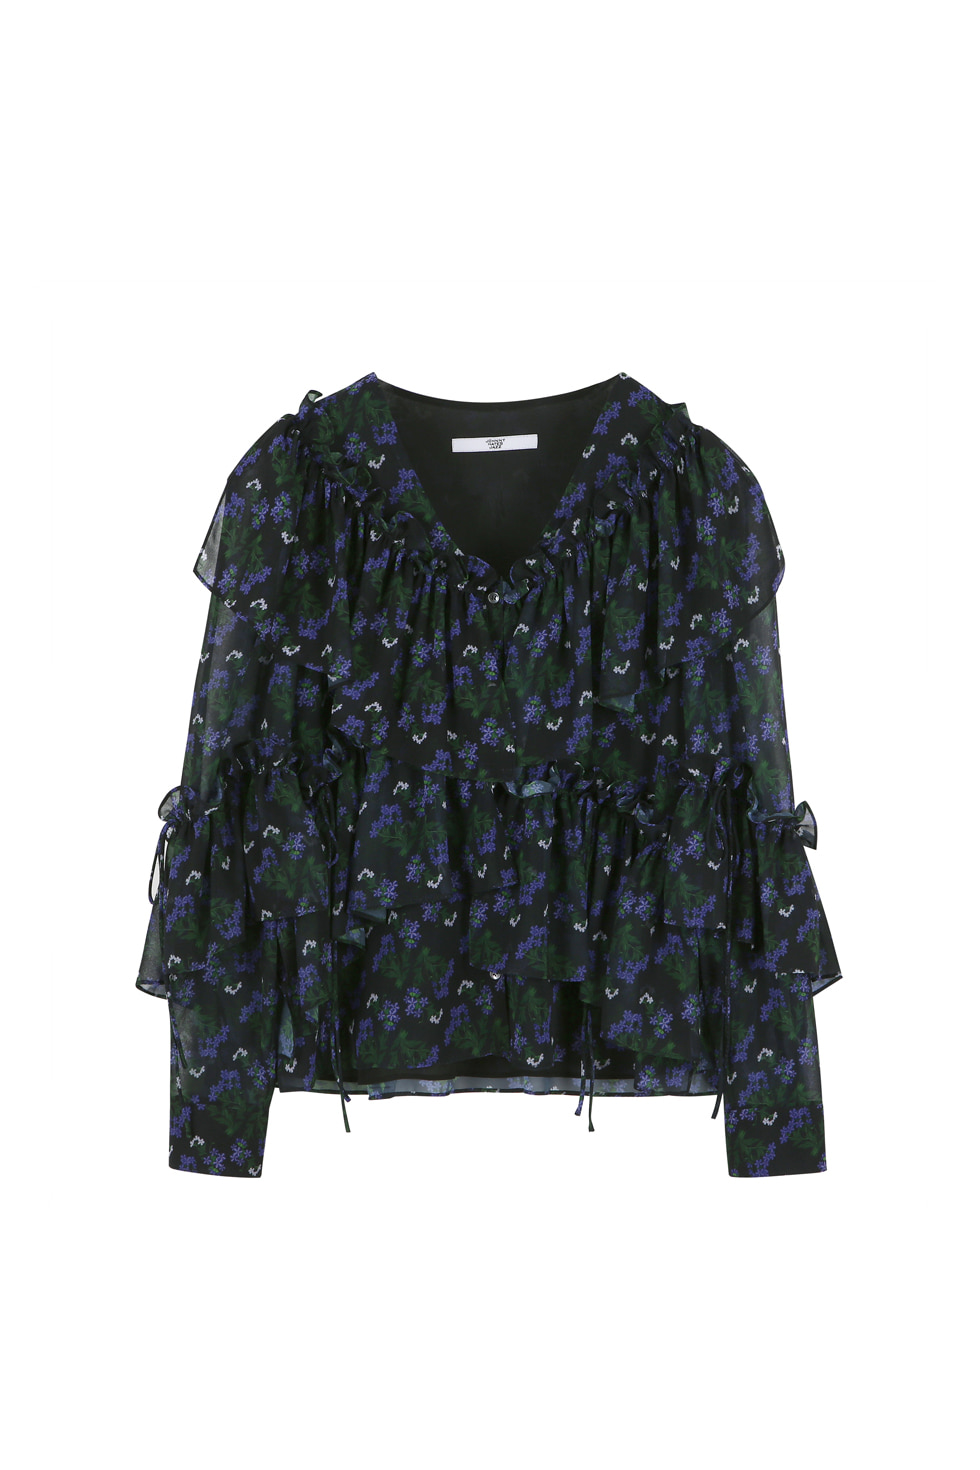 FLORAL RUFFLE BLOUSE - BLACK